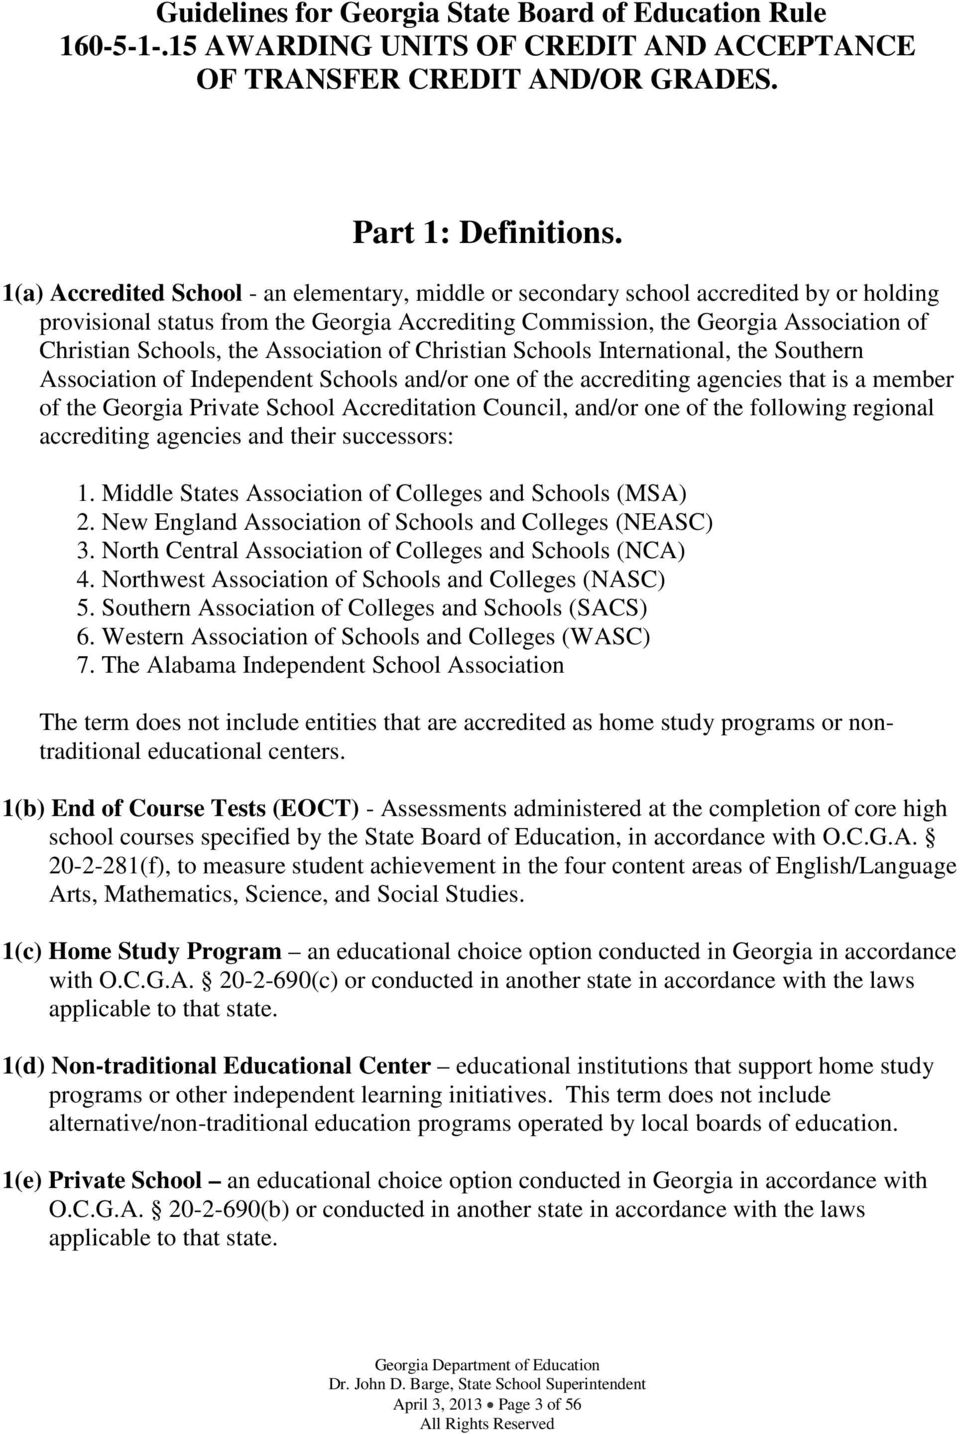 the Association of Christian Schools International, the Southern Association of Independent Schools and/or one of the accrediting agencies that is a member of the Georgia Private School Accreditation